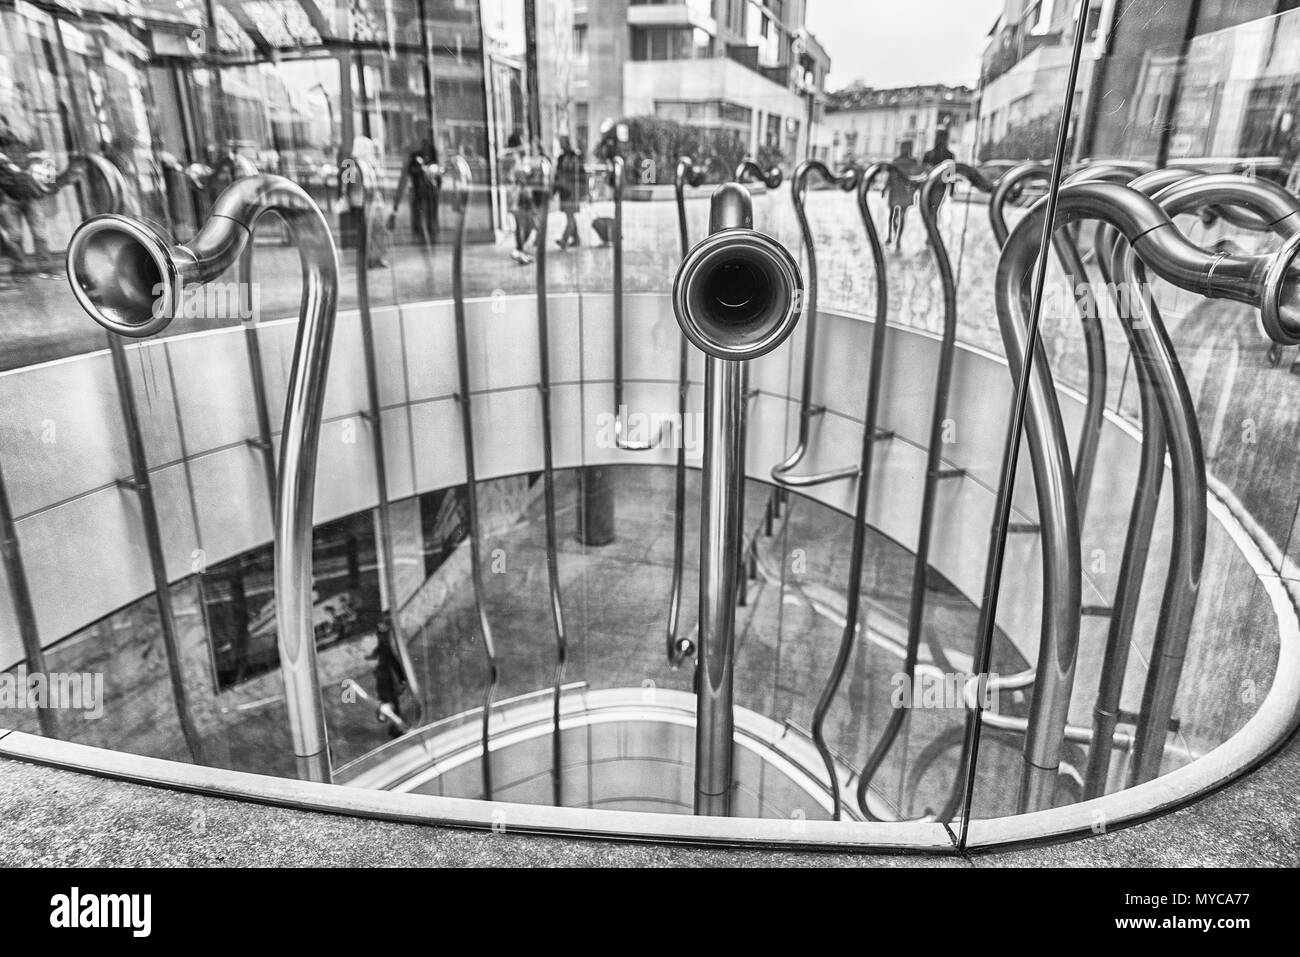 MILAN - MARCH 30: Detail of The Egg, aka Trumpets, artistic installation by Alberto Garutti, in piazza Gae Aulenti, Porta Nuova district, Milan, Italy - Stock Image